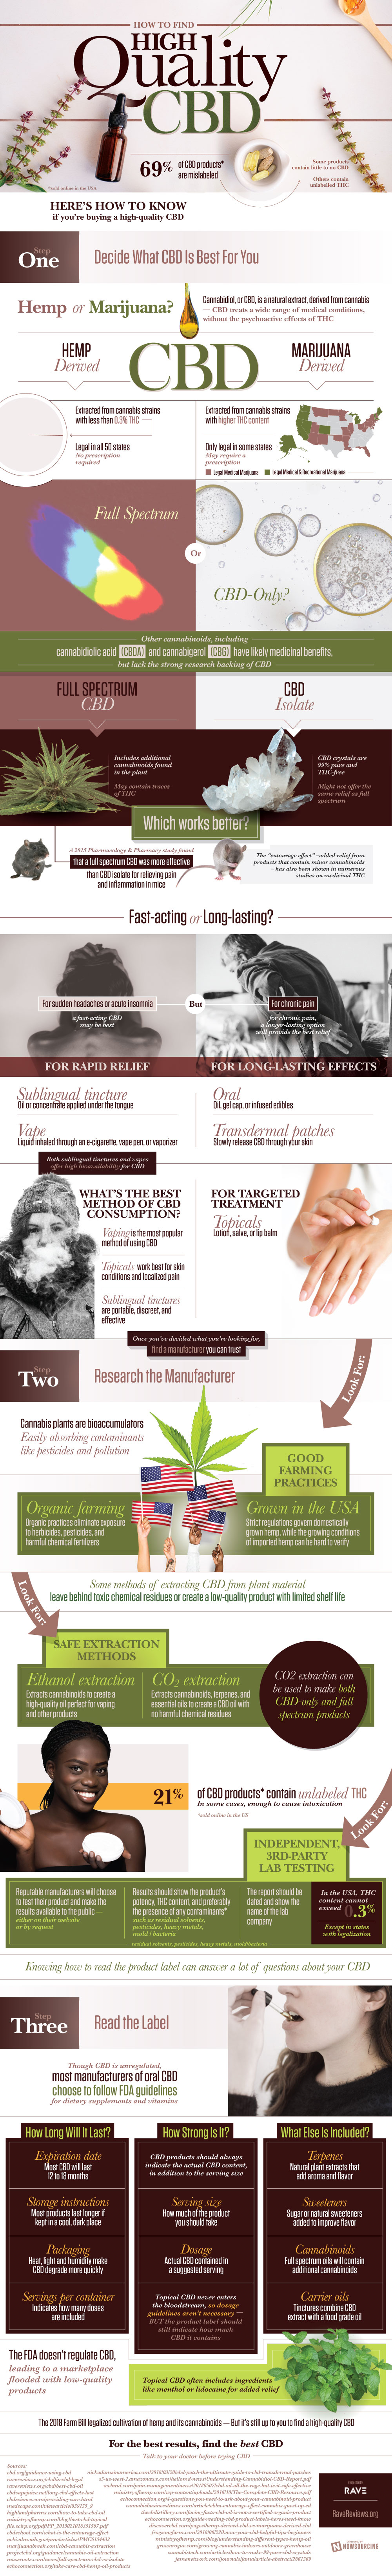 How to Find Good Quality CBD - Infographic